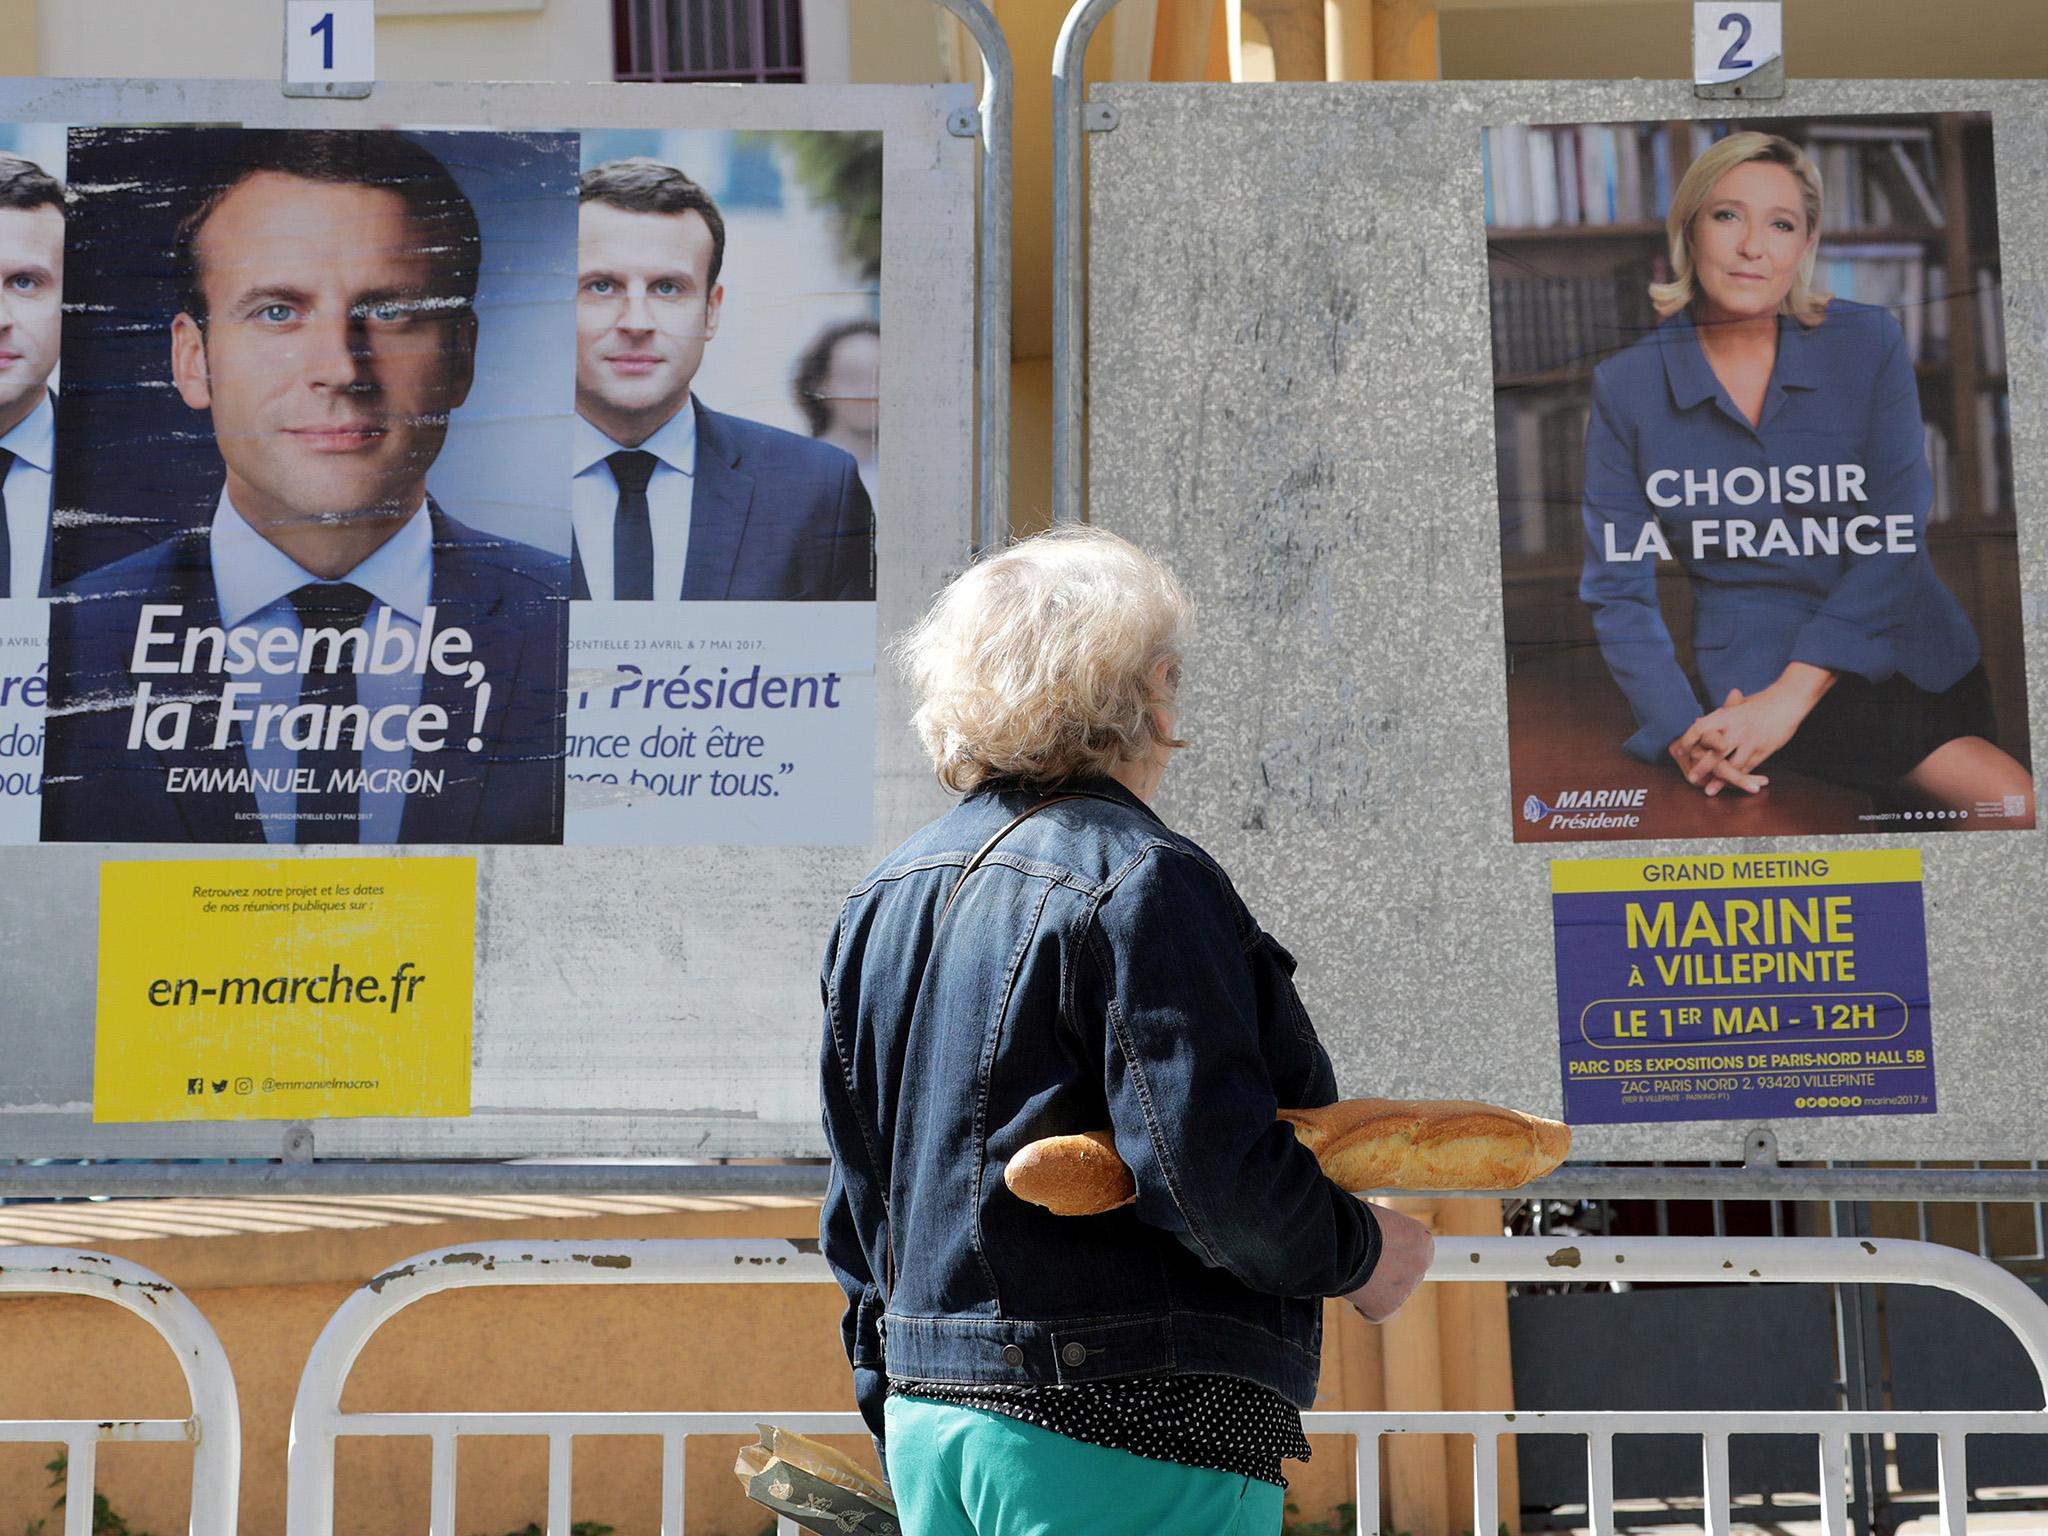 Don T Believe The Liberals There Is No Real Choice Between Le Pen And Macron The Independent The Independent